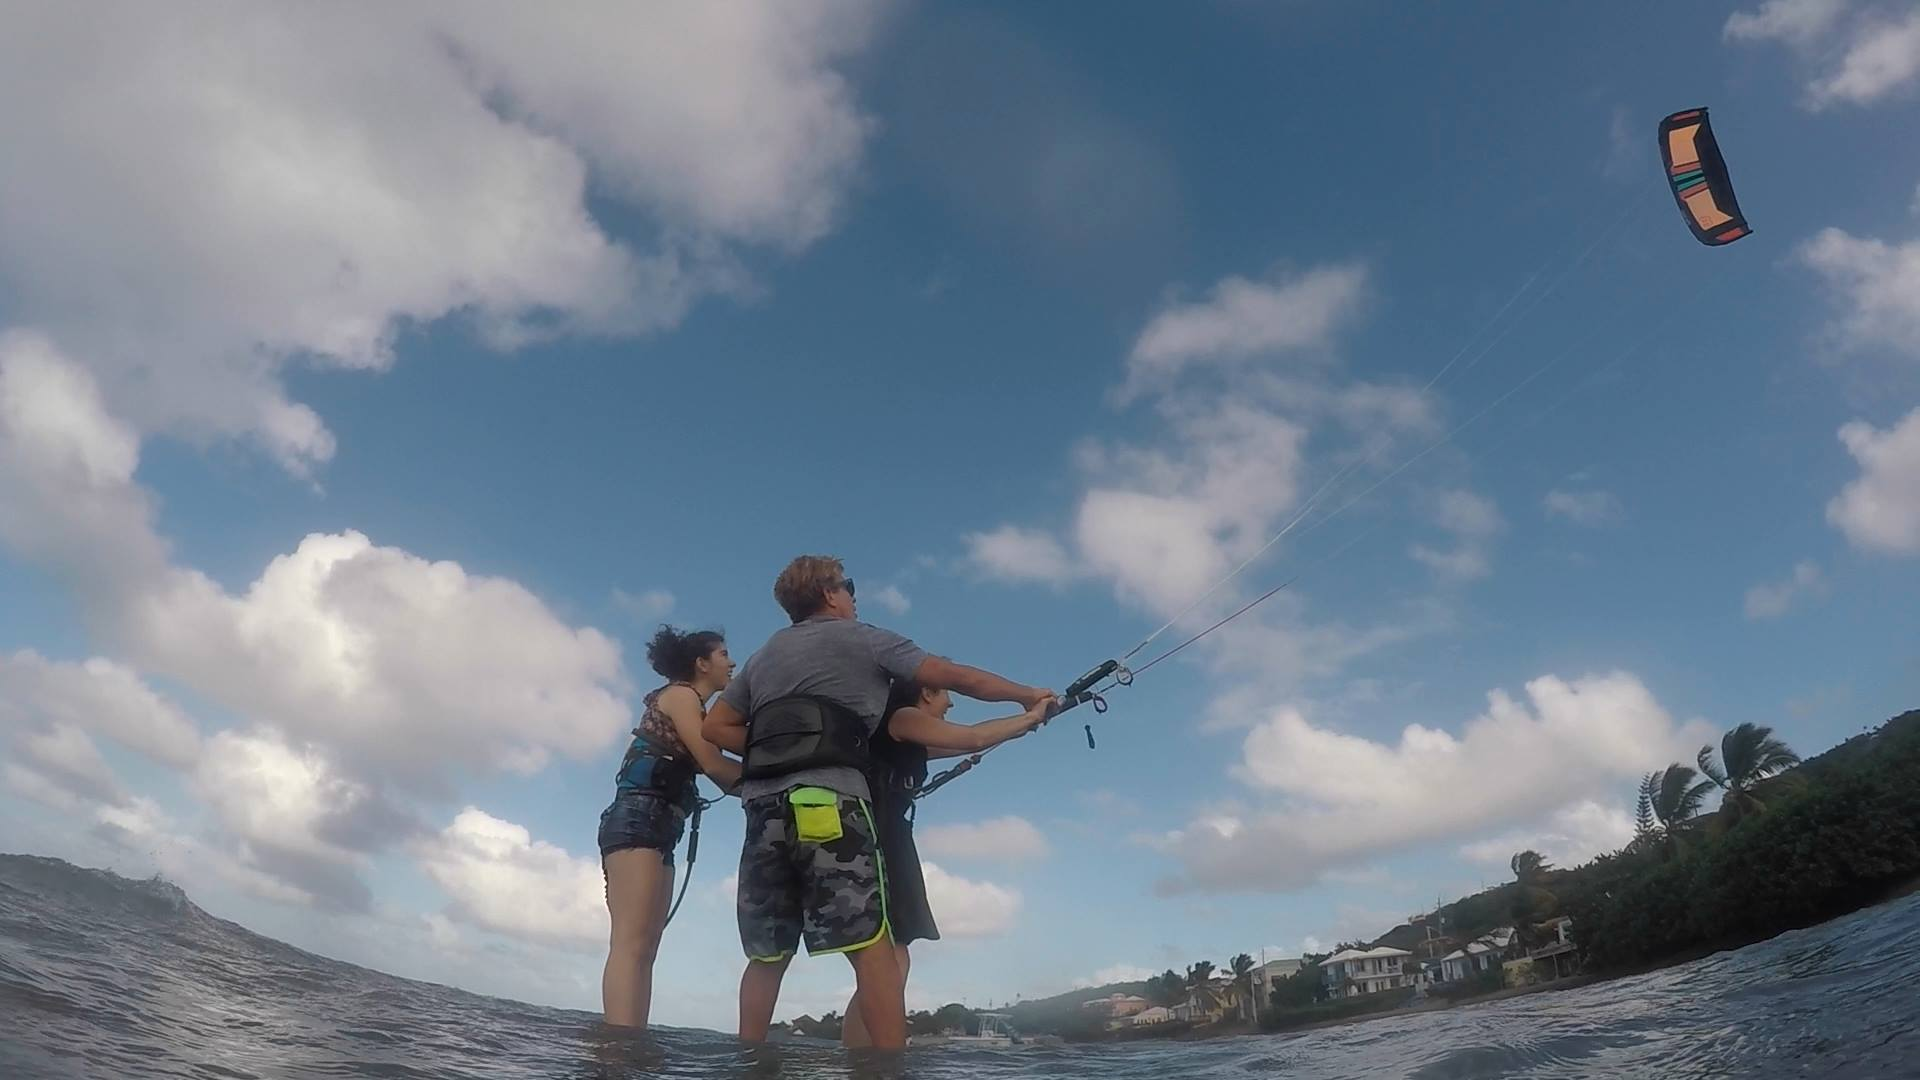 Kite St. Croix teaching two women how to kiteboard.